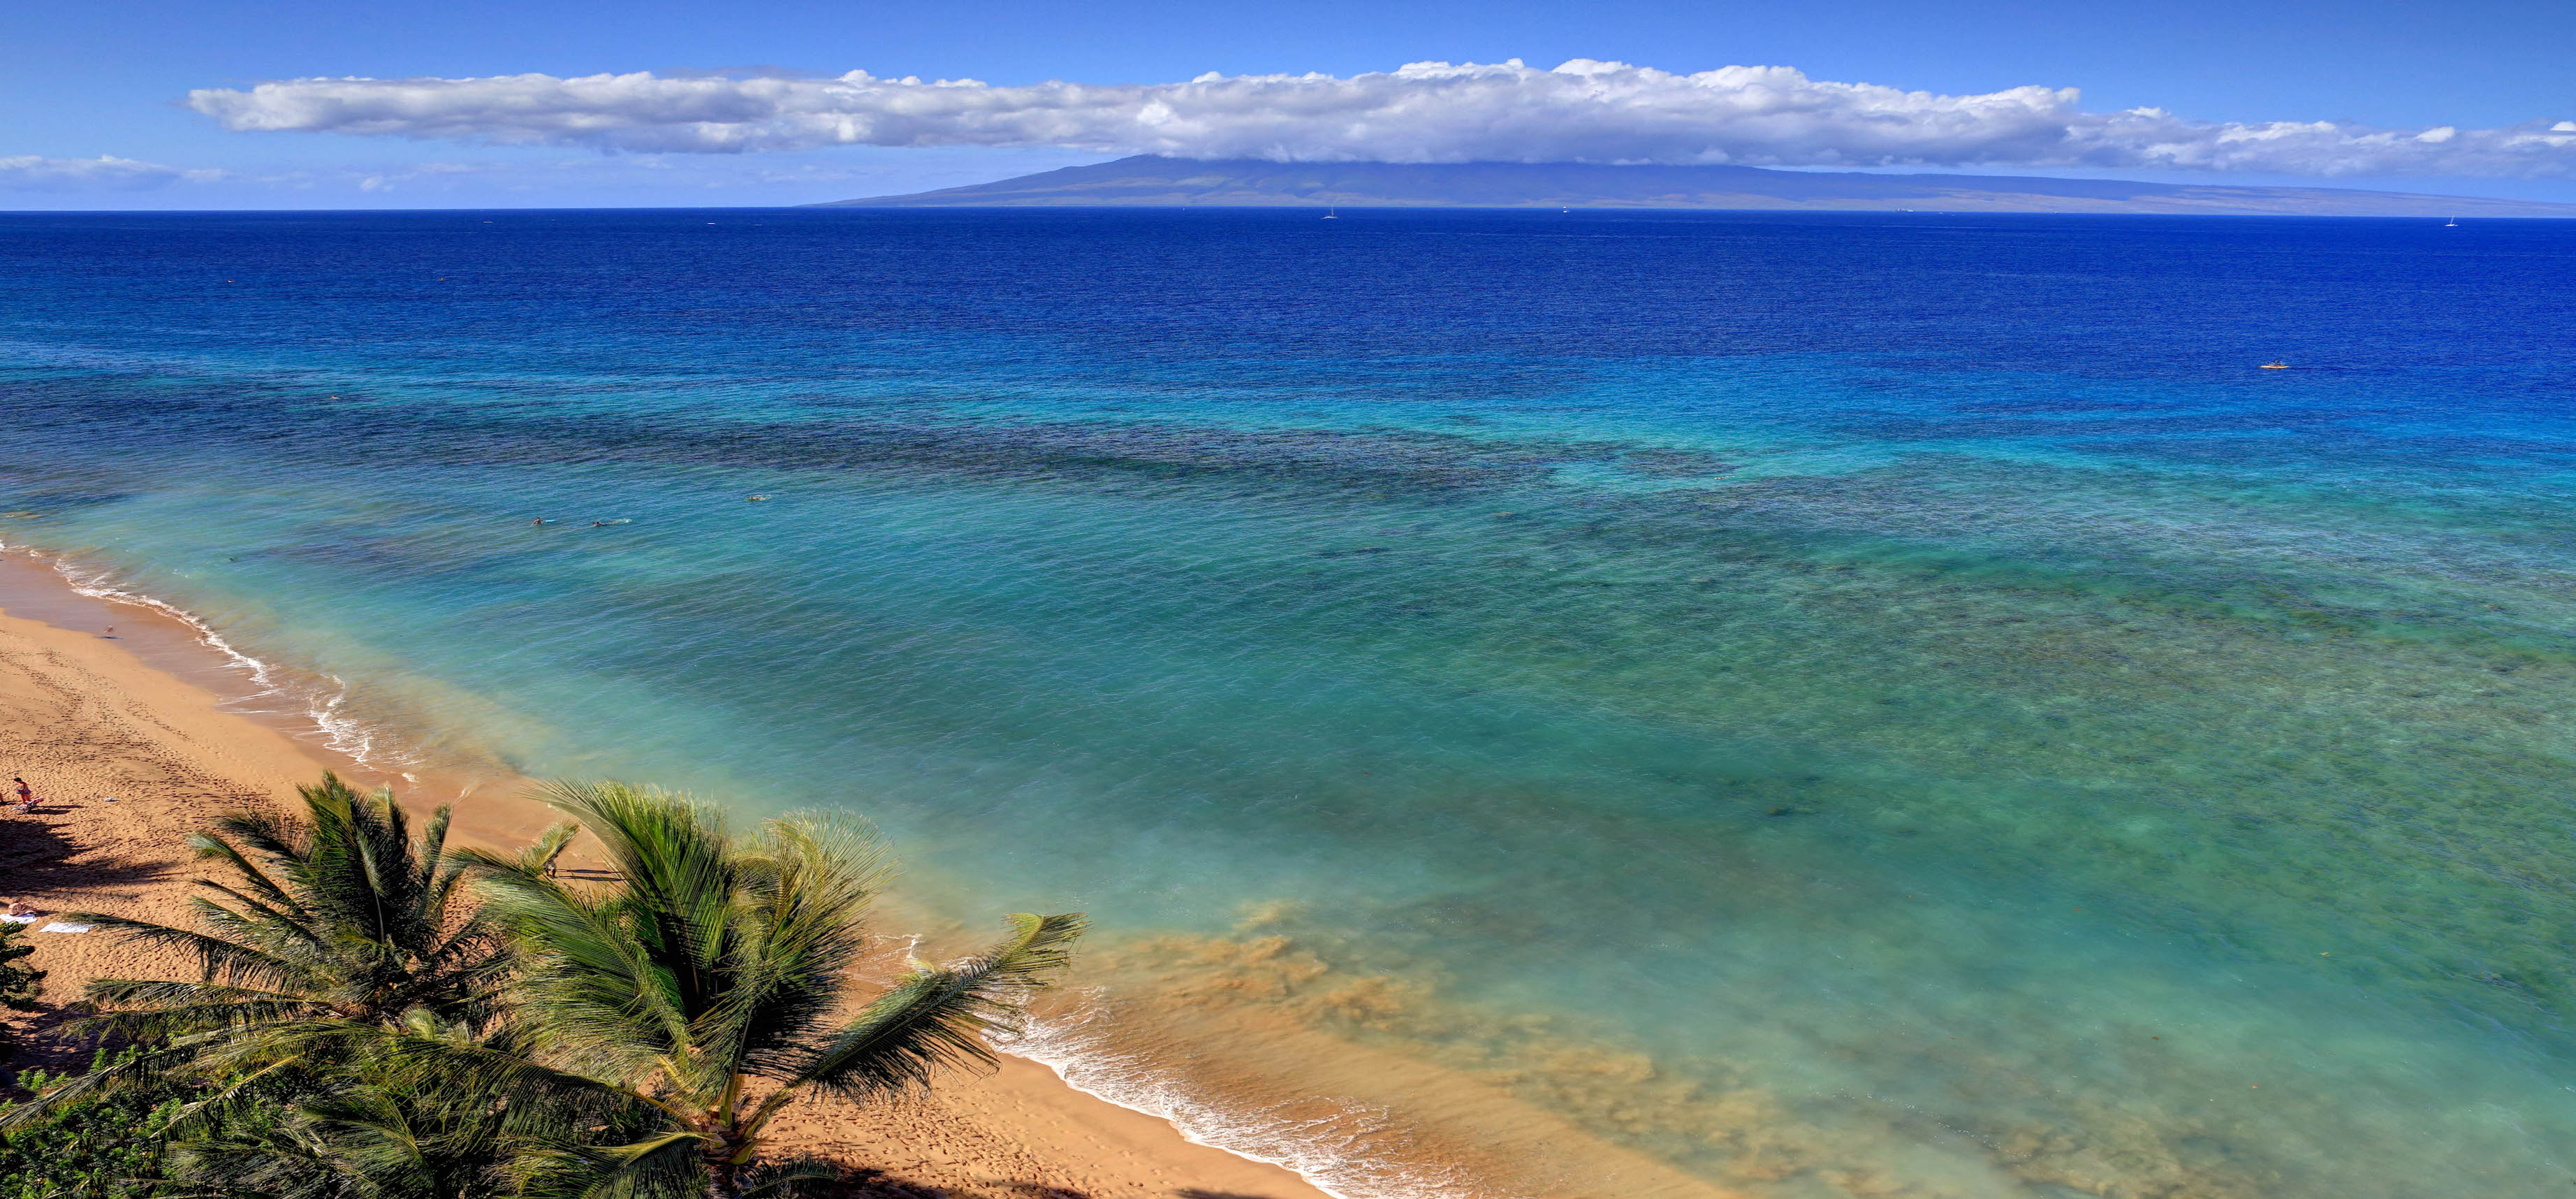 Kaanapali Beach Rentals - Beach and clear blue waters